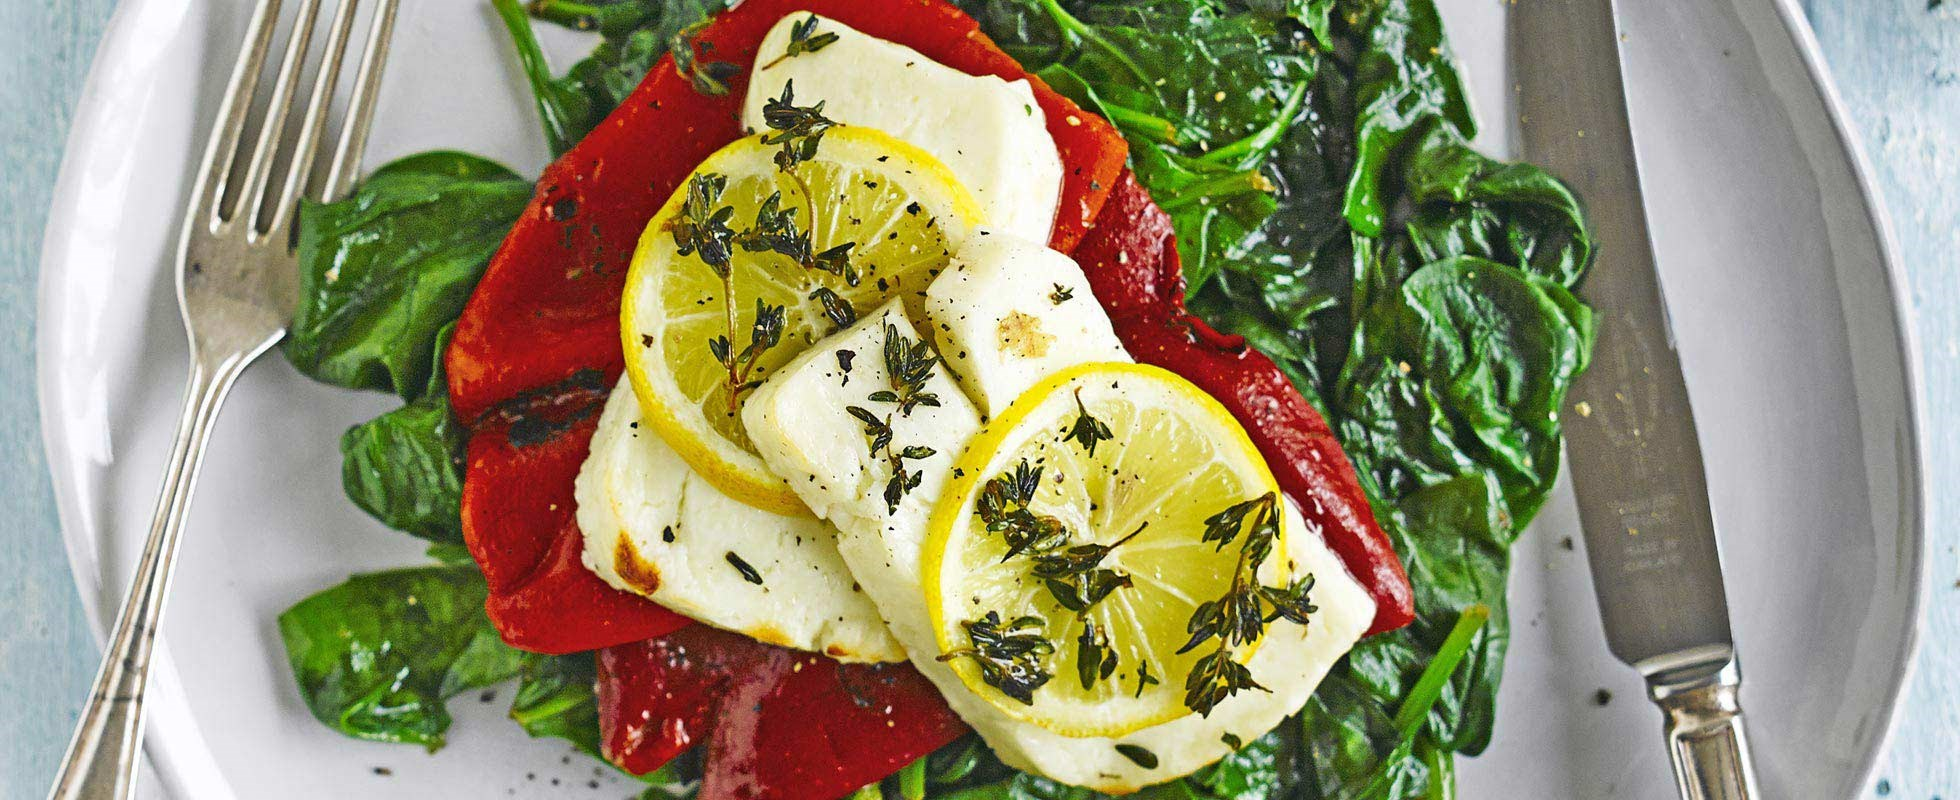 Thyme-bakedhalloumi with peppers